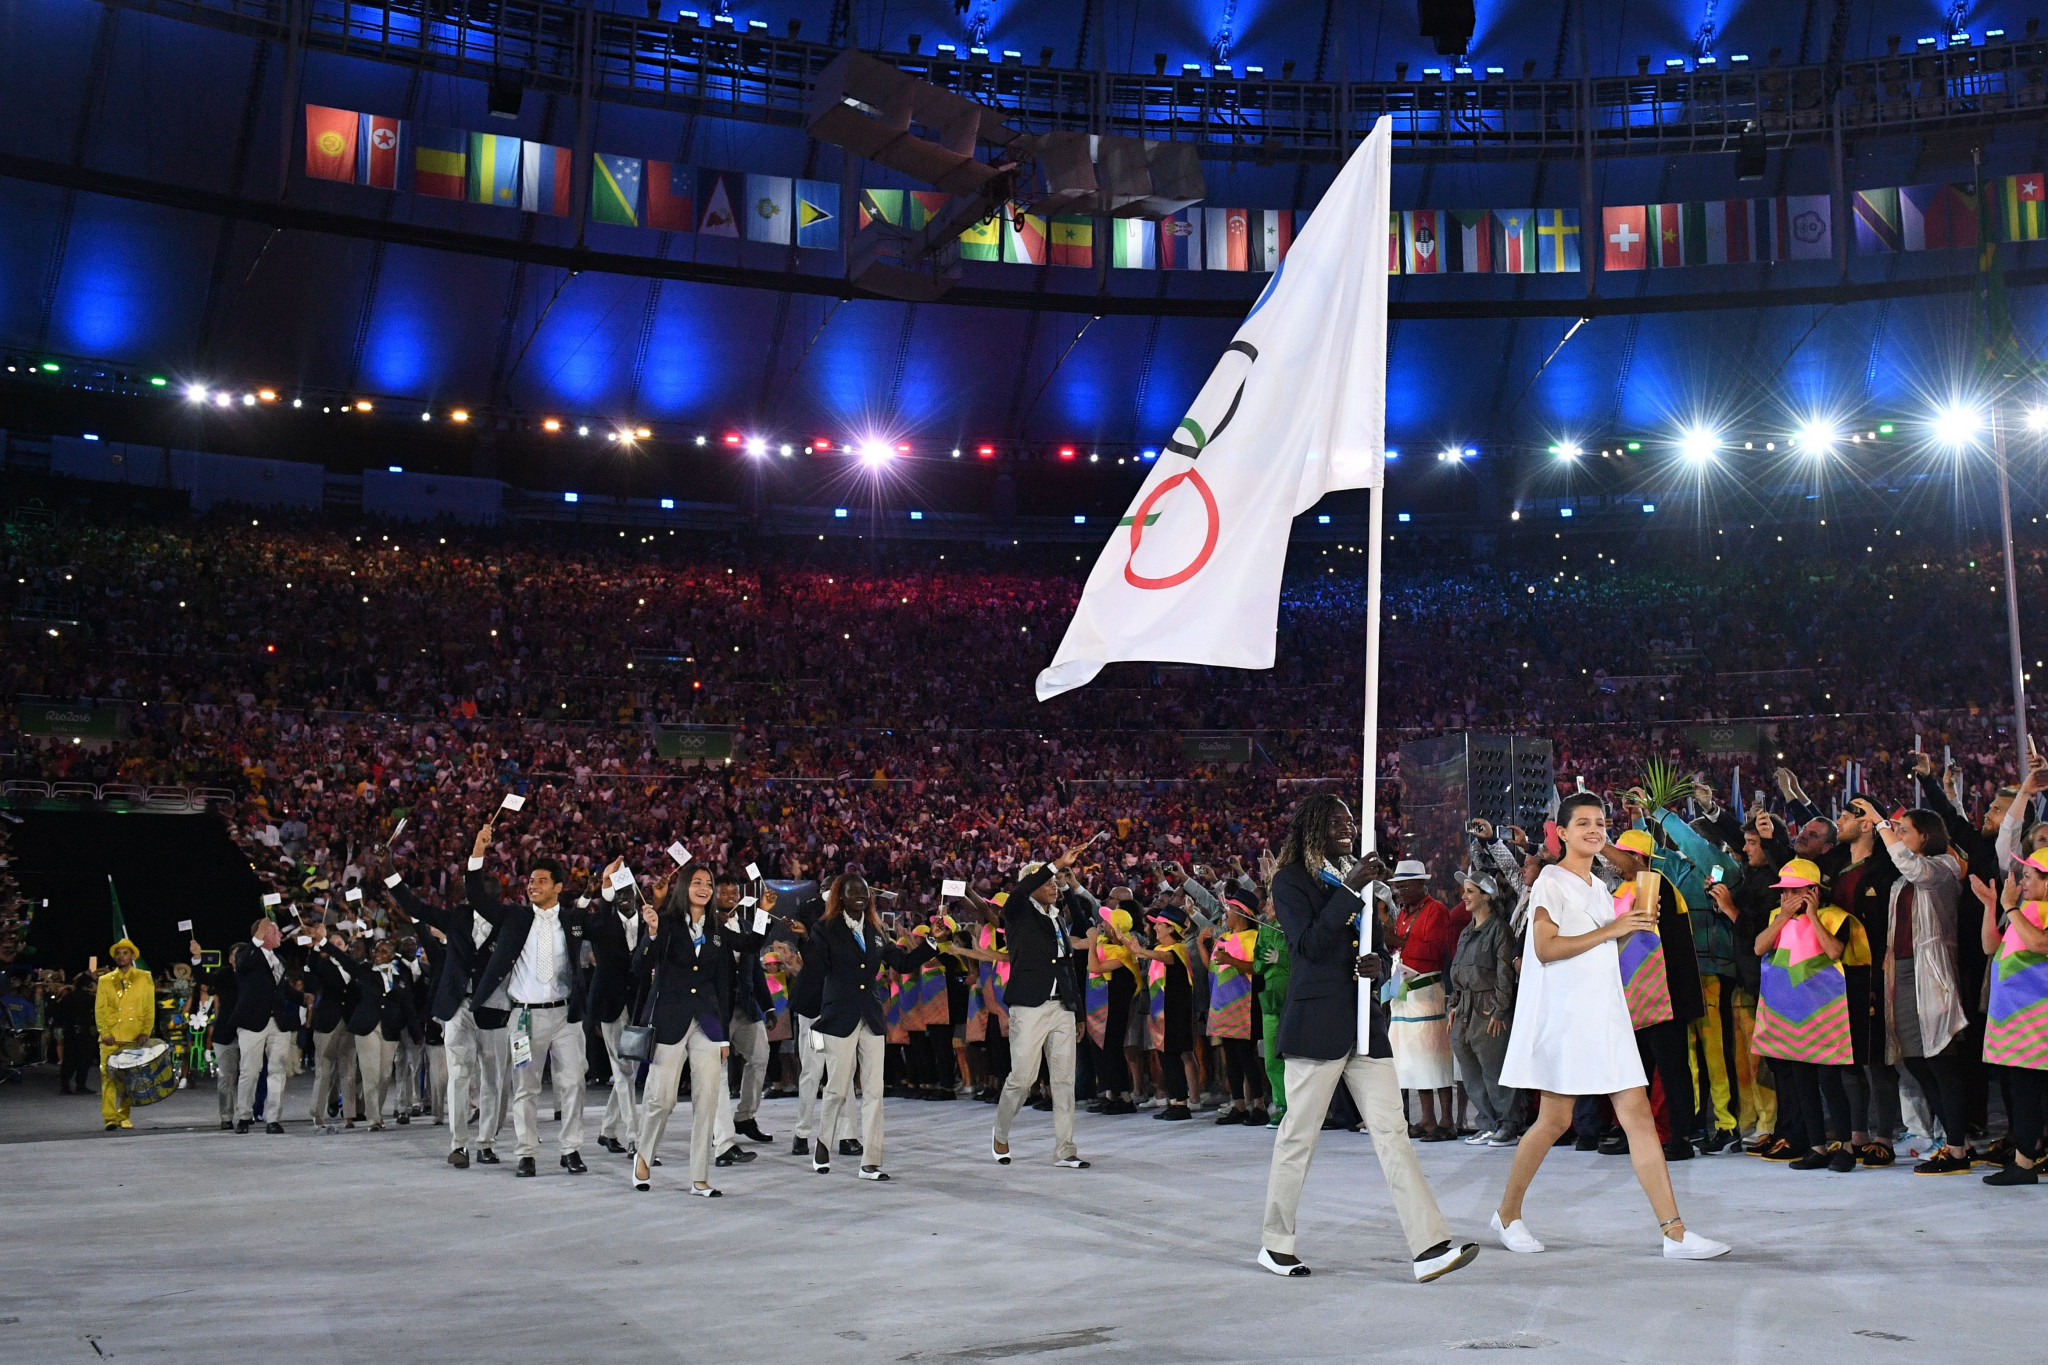 Rose Nathike Lokonyen was the Refugee Olympic Team flagbearer at the Rio 2016 Opening Ceremony  ©Getty Images